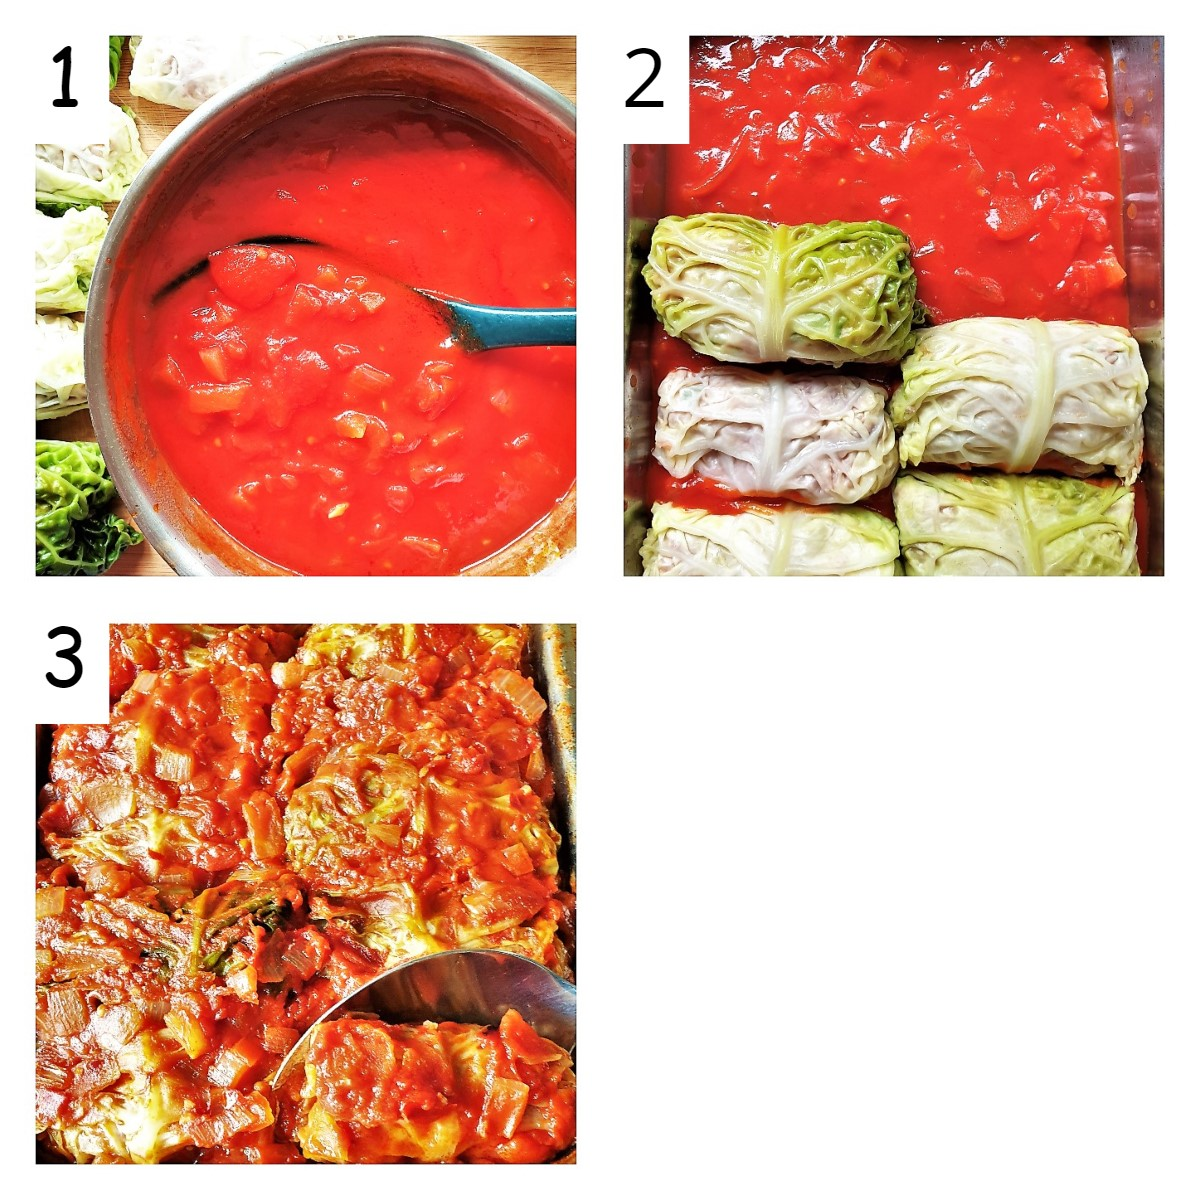 Collage of 3 images showing steps for baking stuffed cabbage rolls.